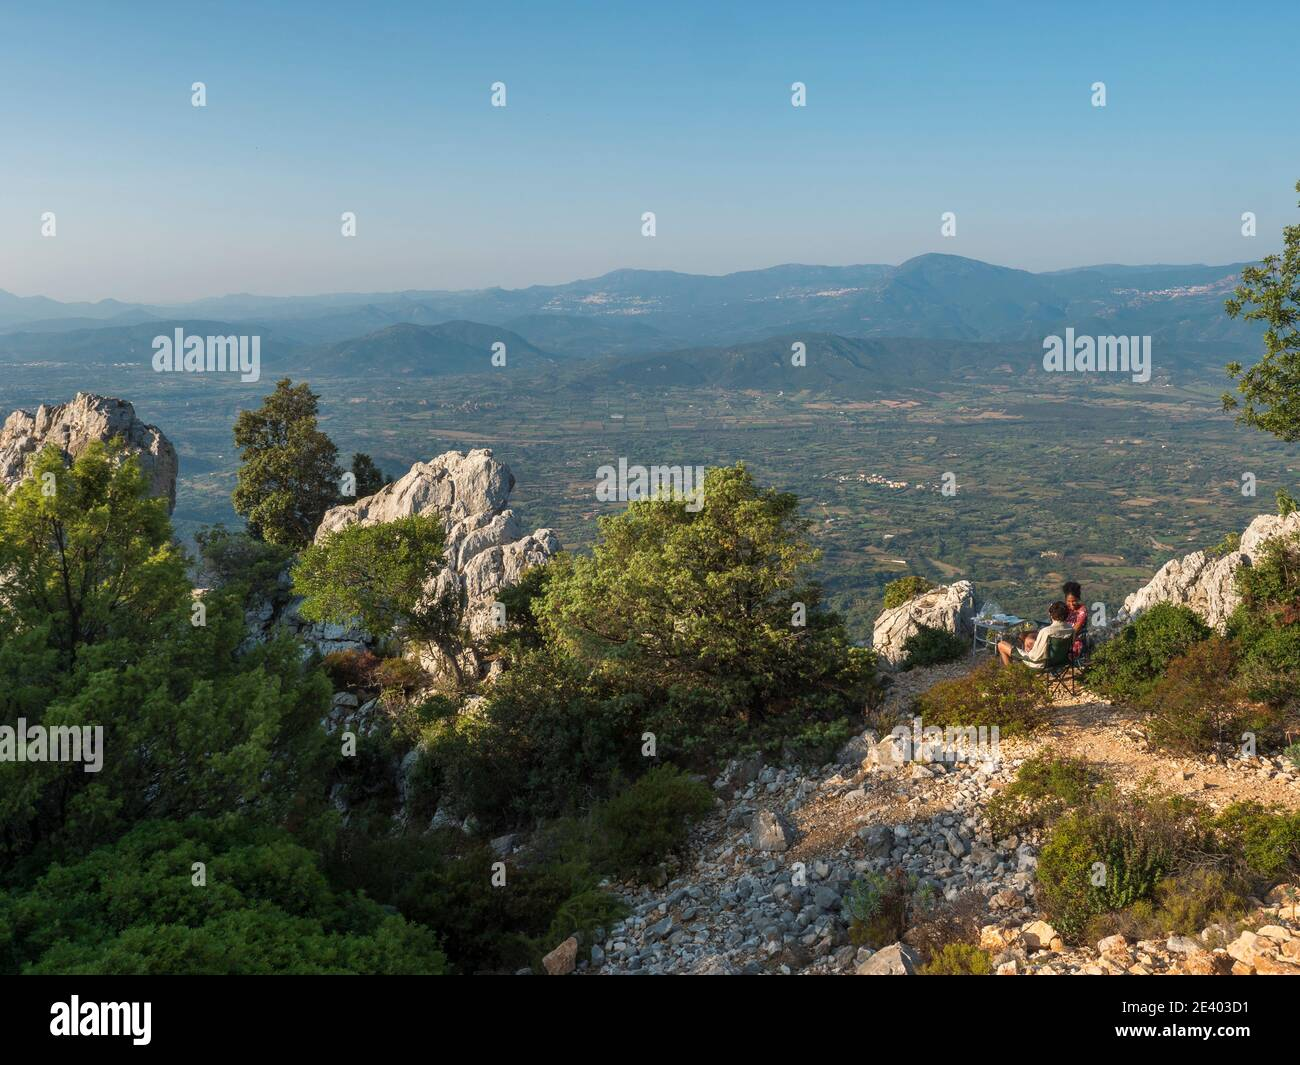 Baunei, Sardinia, Italy, September 17, 2020: Young happy couple having breakfast at Baunei viewpoint with green landscape of trees, limestone rocks Stock Photo